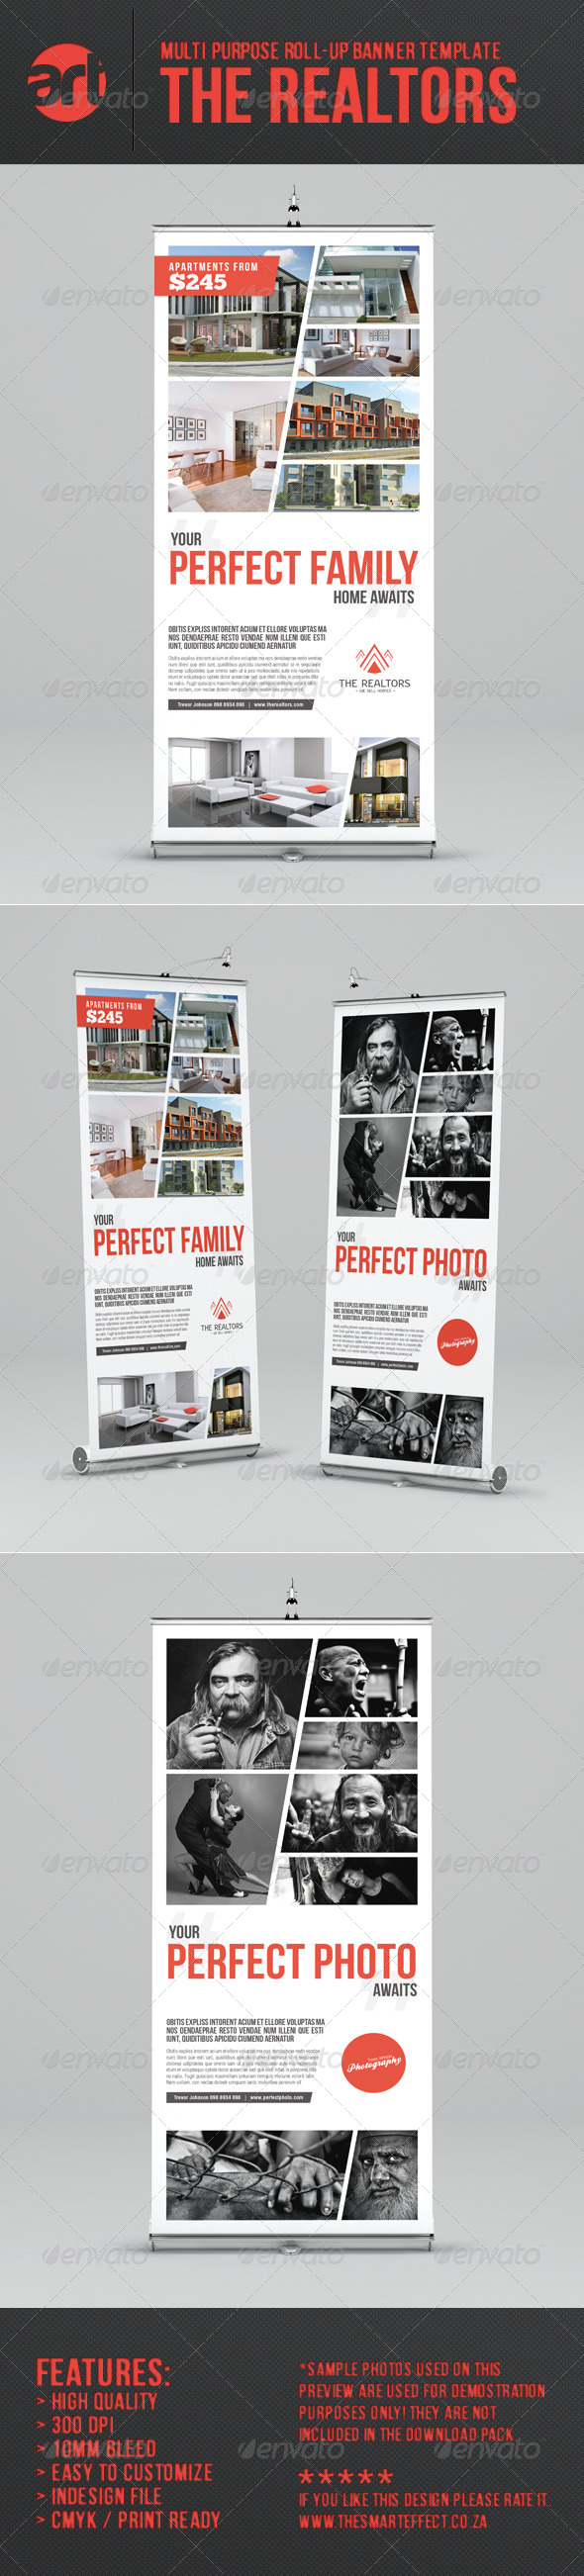 The Realtors Multi-Purpose Roll-up Banner Template - Signage Print Templates